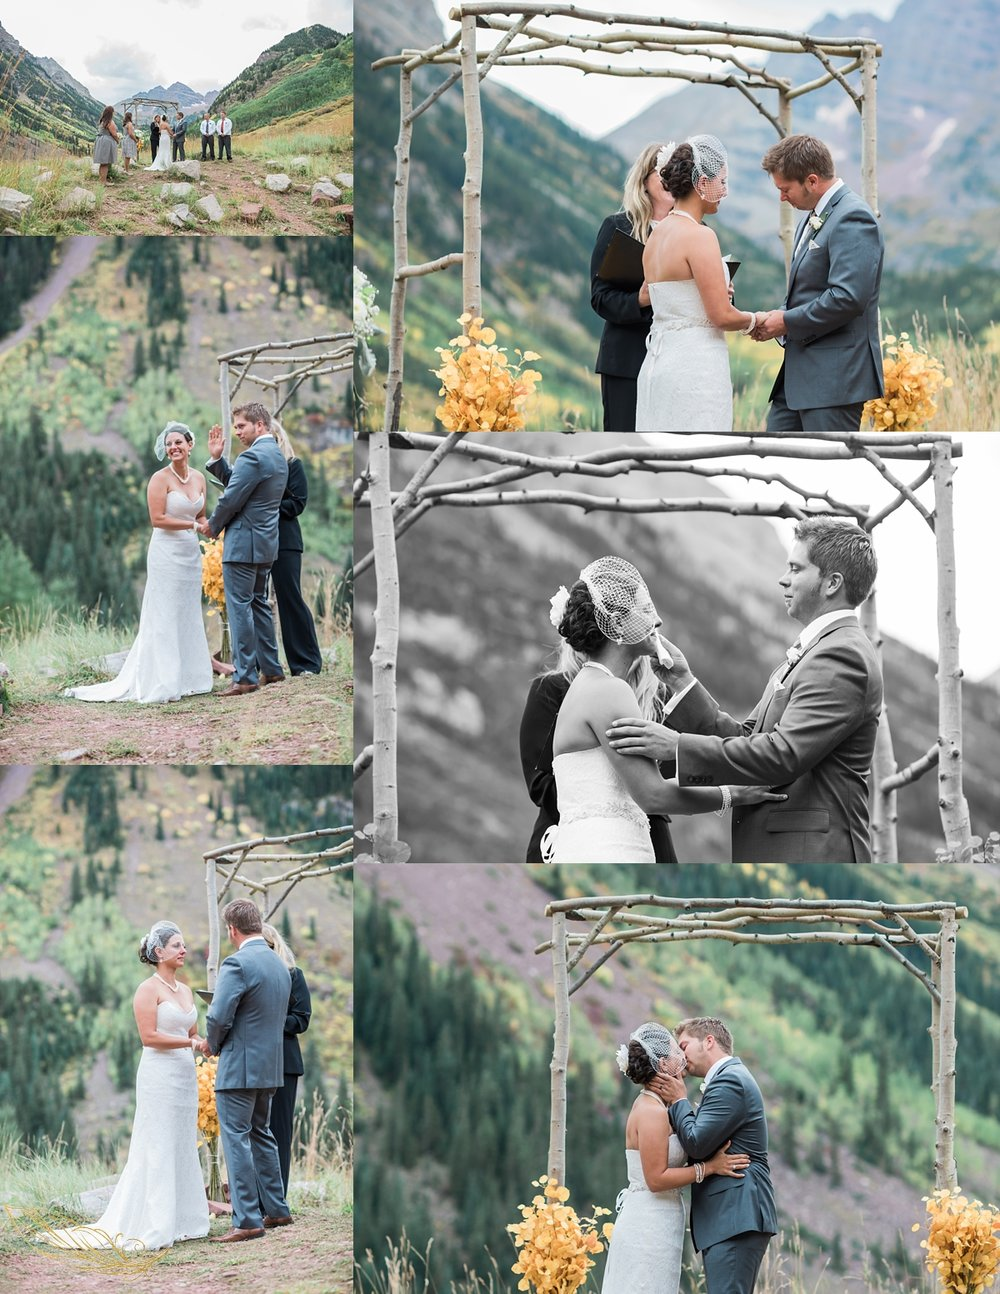 rocky mountain wedding photographer, maroon bells amphitheater wedding, fall wedding in colorado